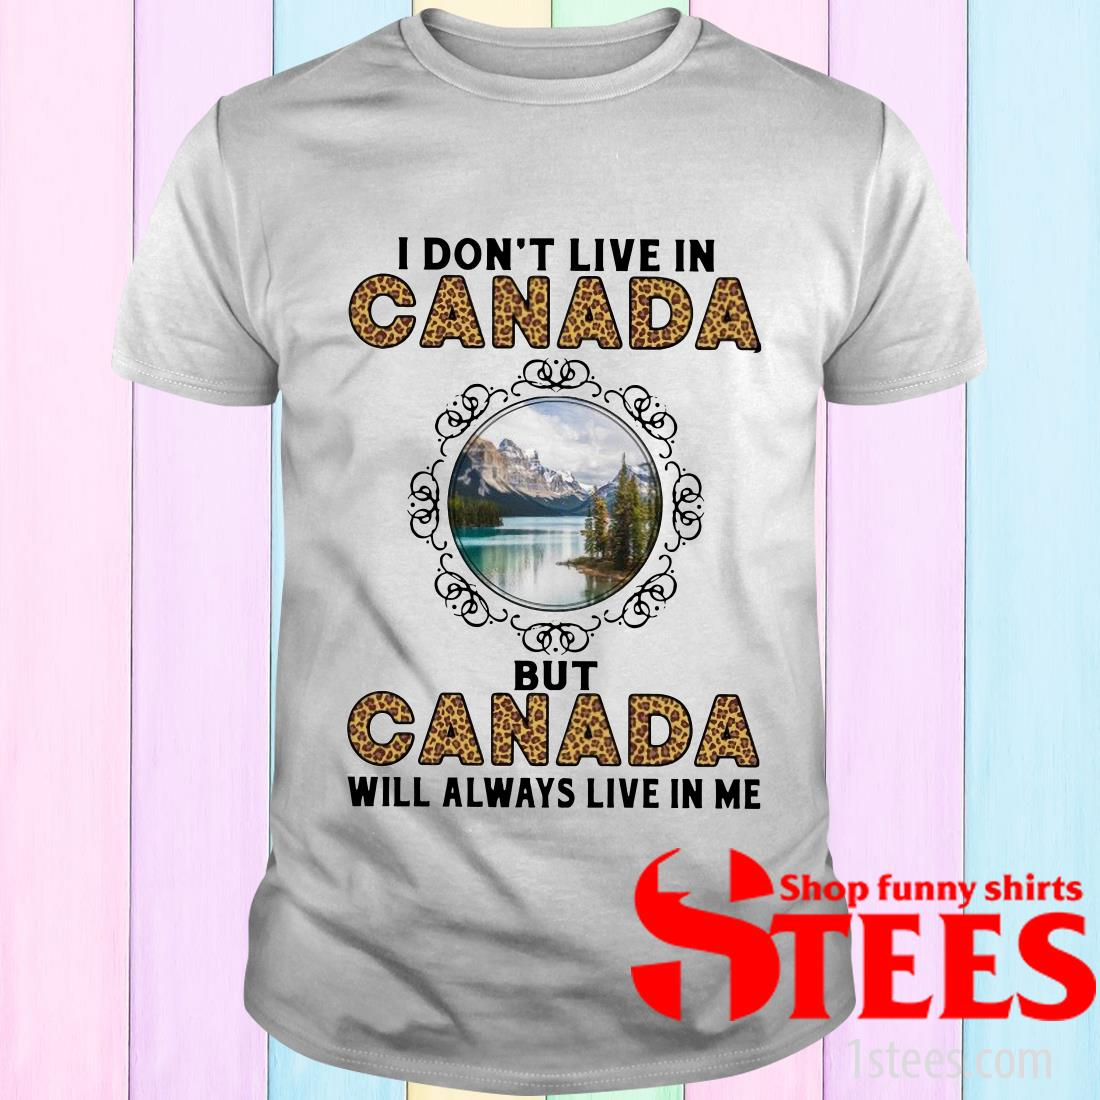 I Don't Live In Canada But Canada Will Always Live In Me T-Shirt